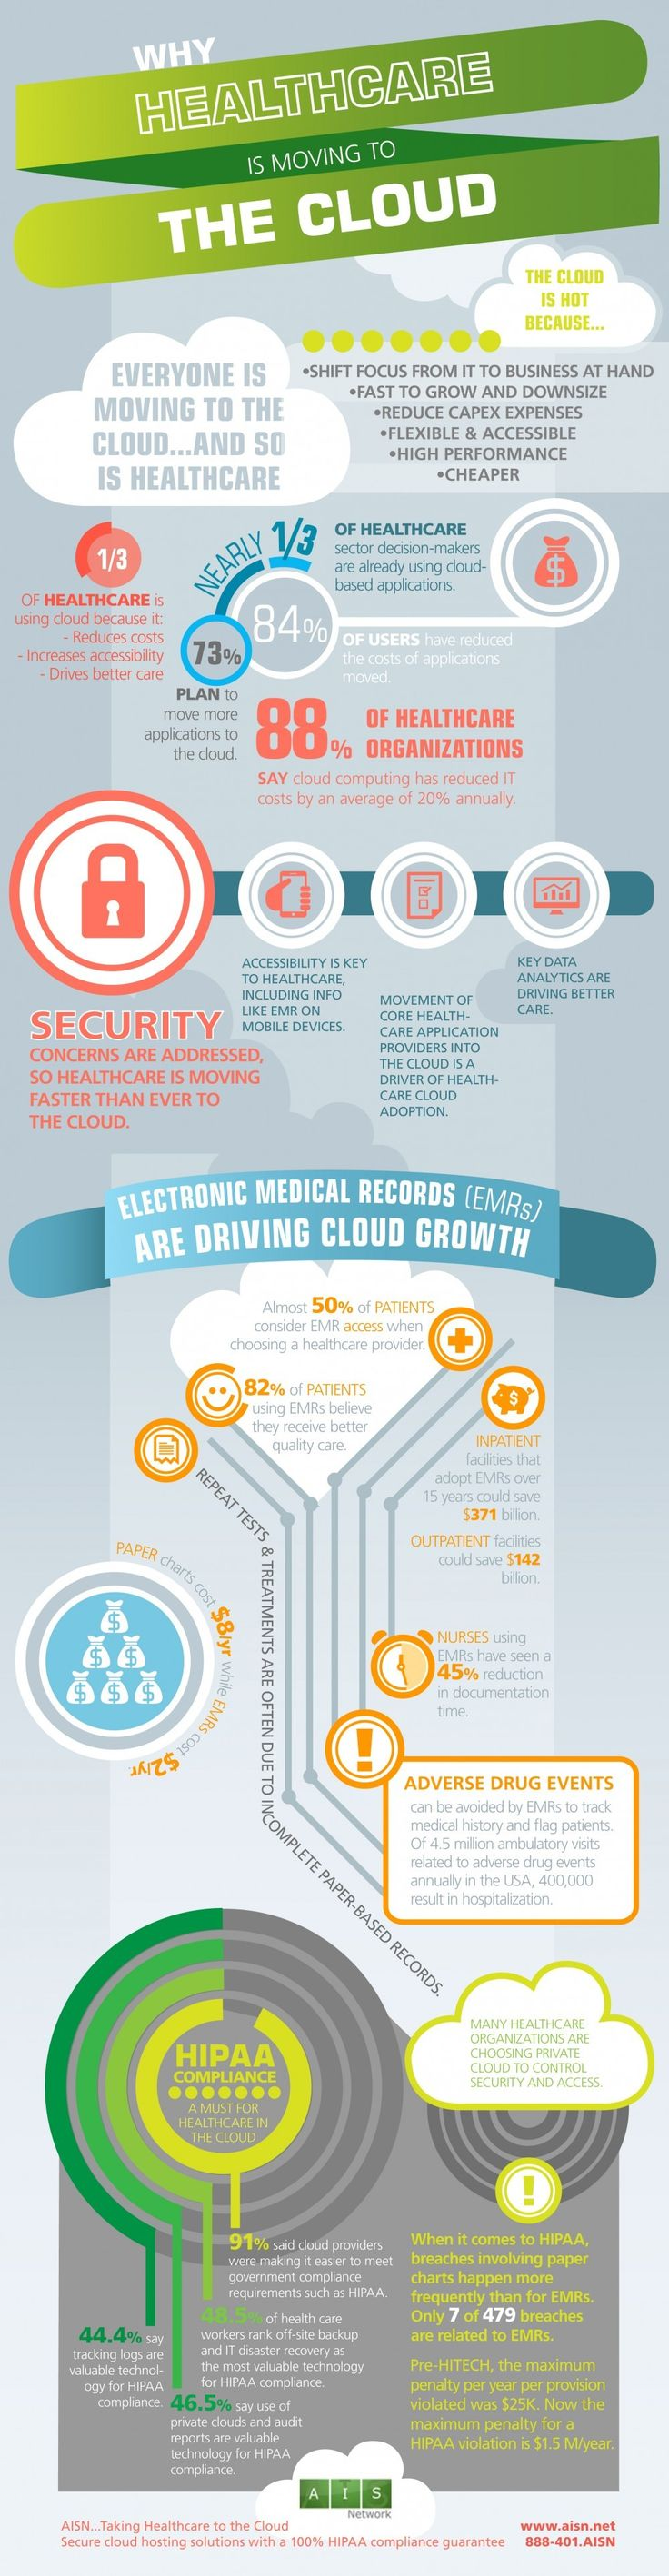 Why Healthcare Is Moving to the Cloud Infographic